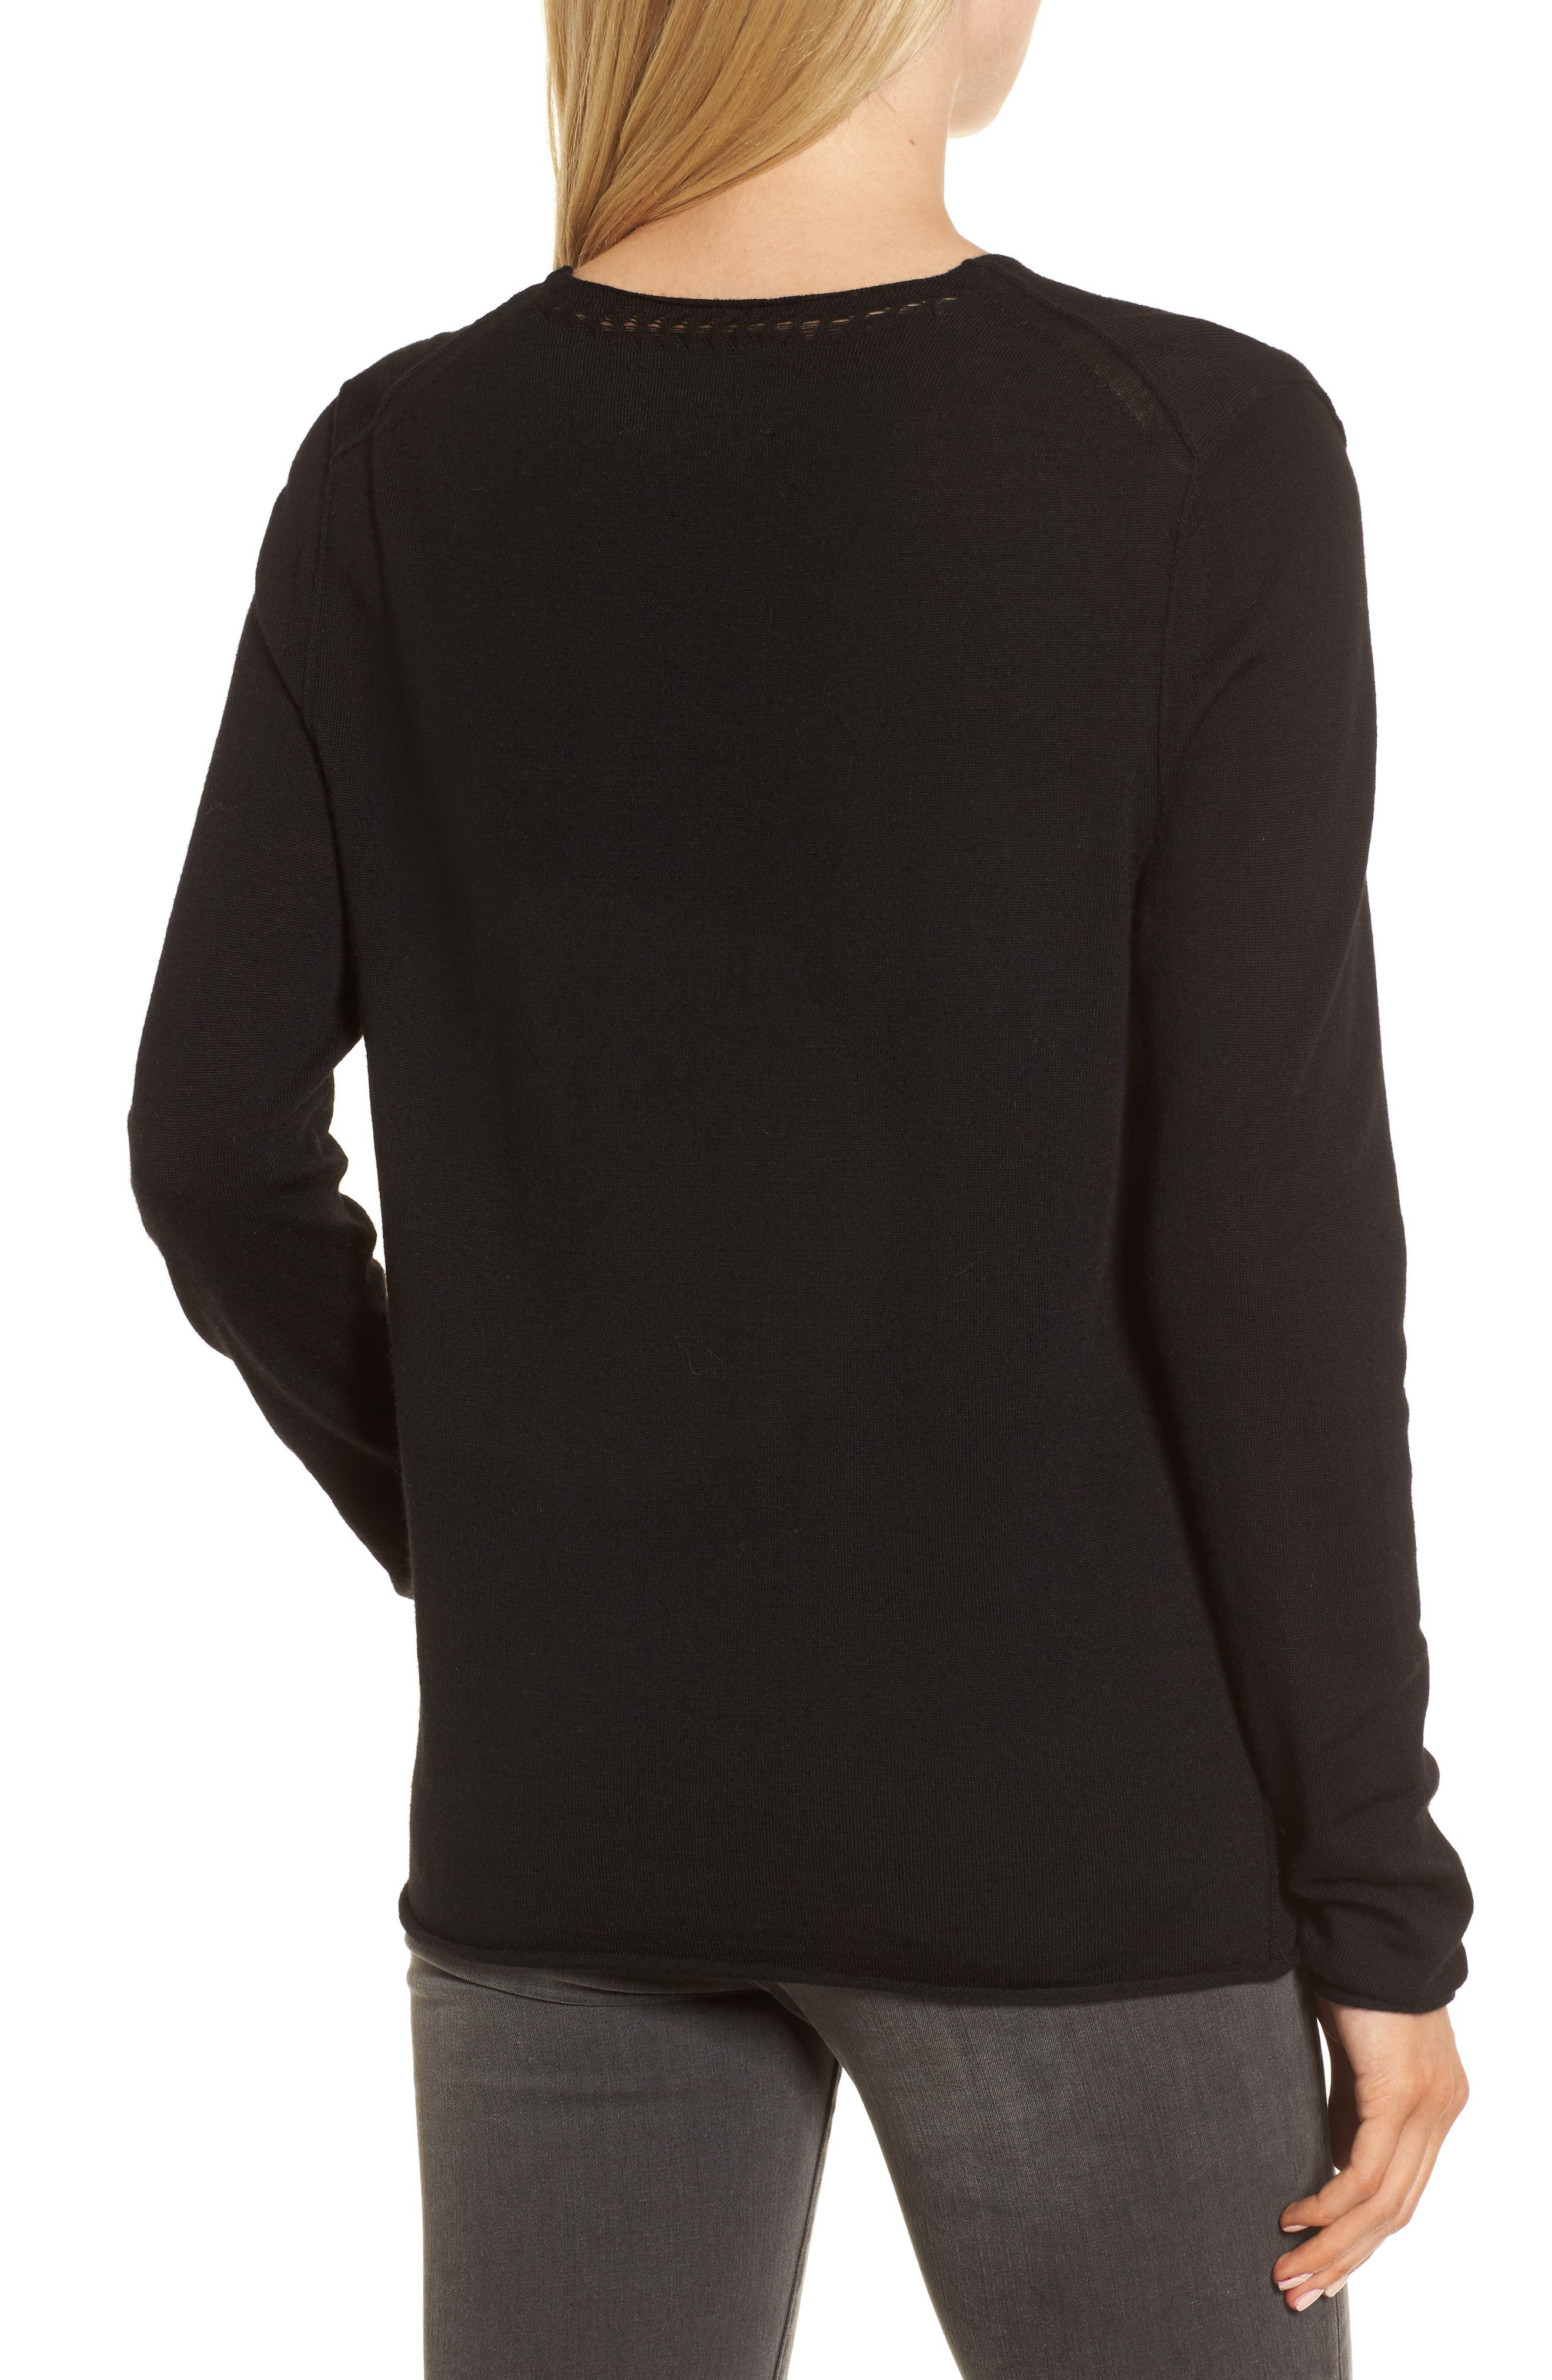 Gwendal Bis Merino Wool Sweater,                             Alternate thumbnail 2, color,                             001